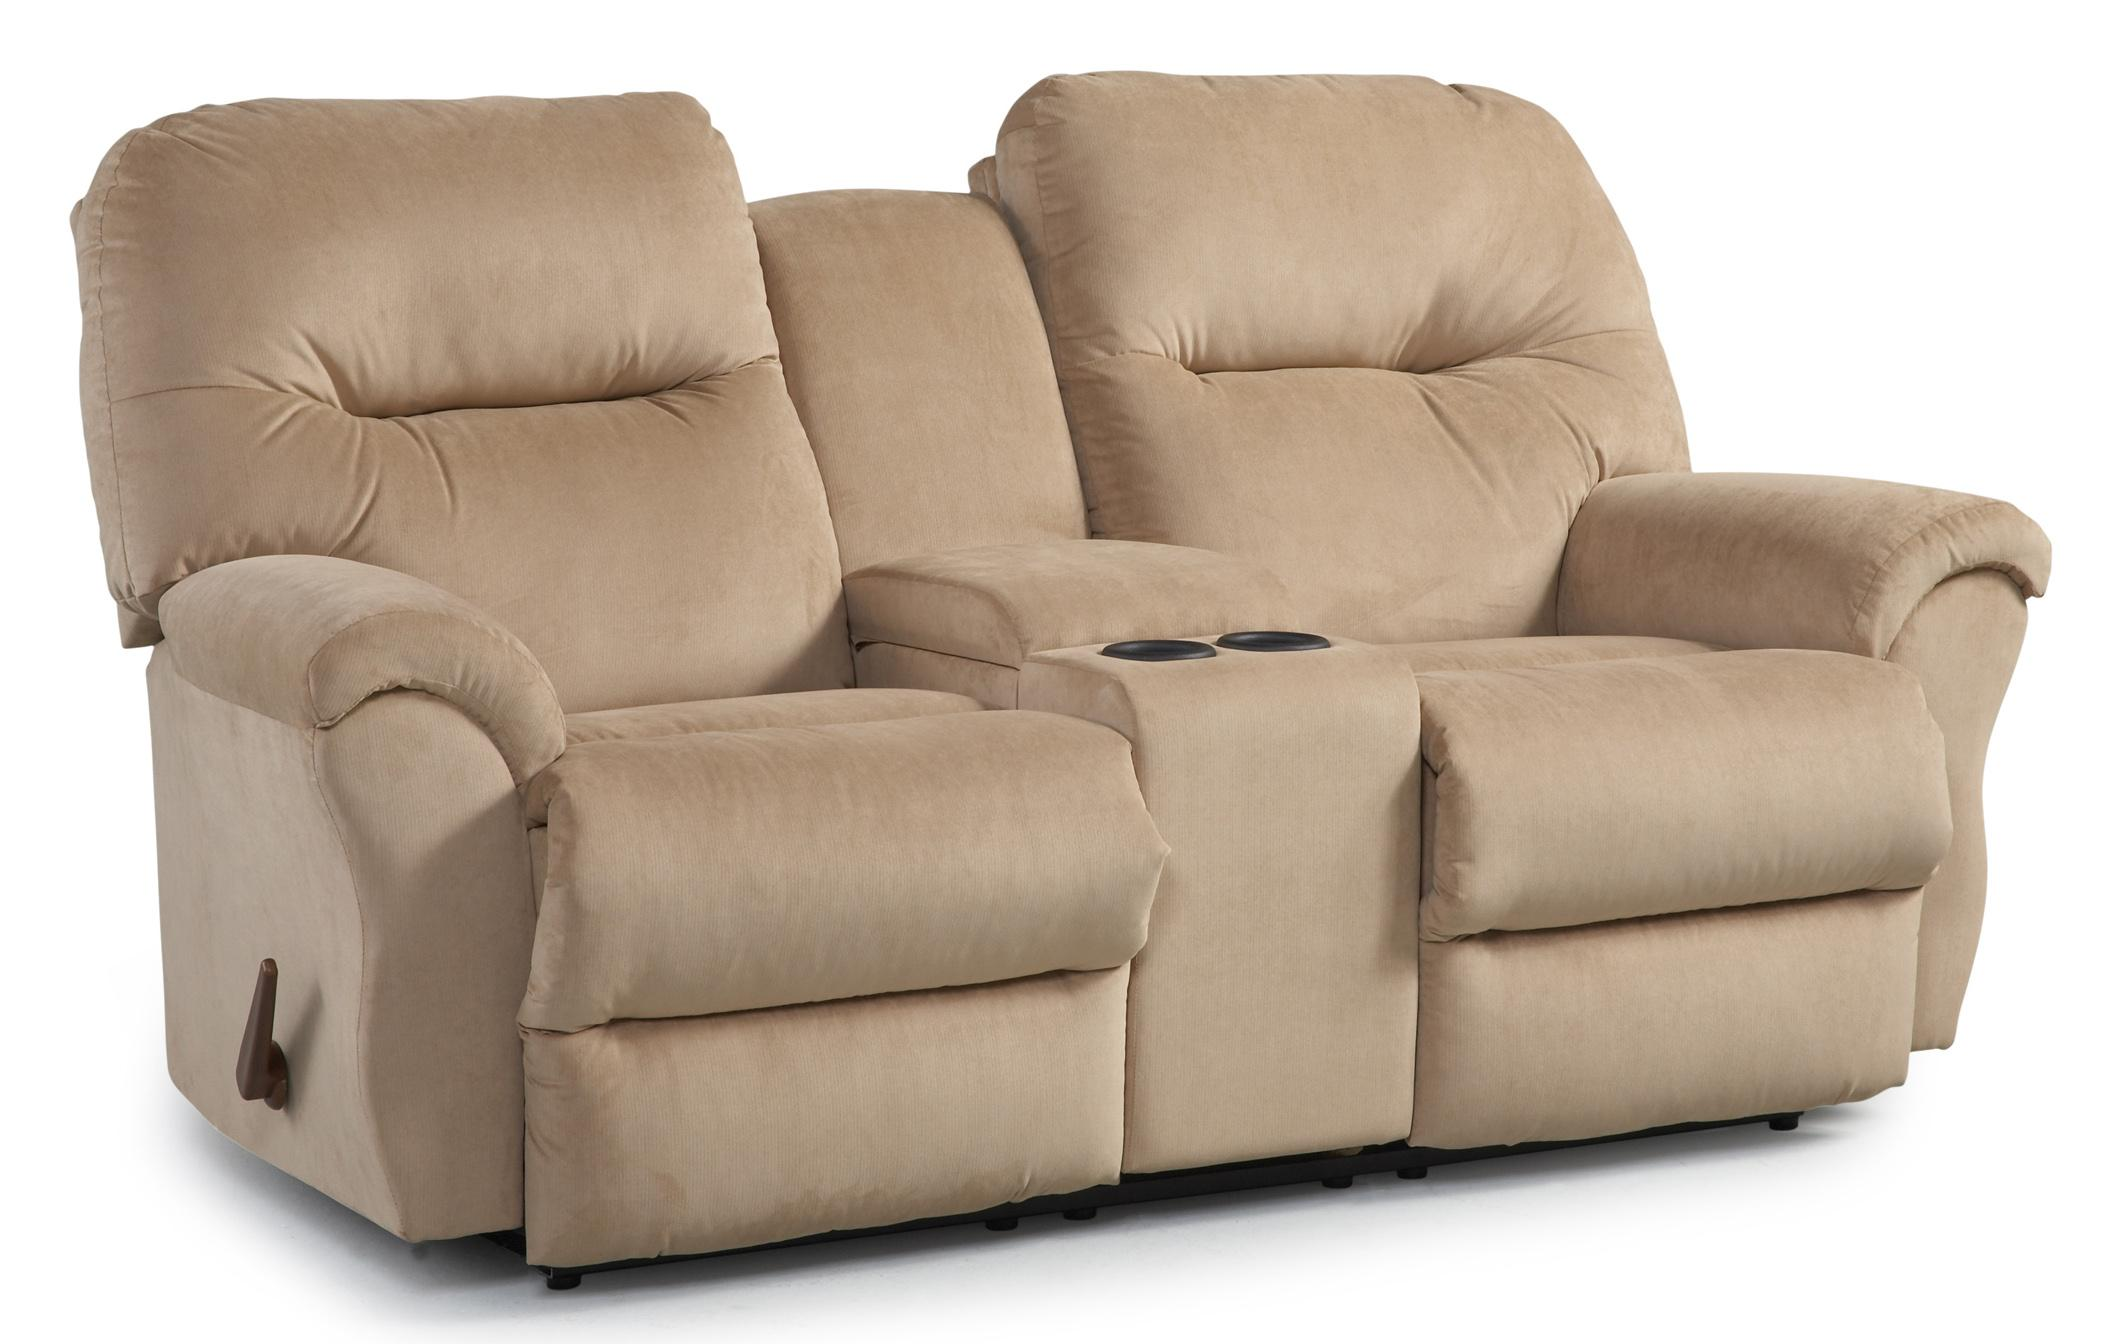 Bodie rocking reclining loveseat with storage console by Best loveseats